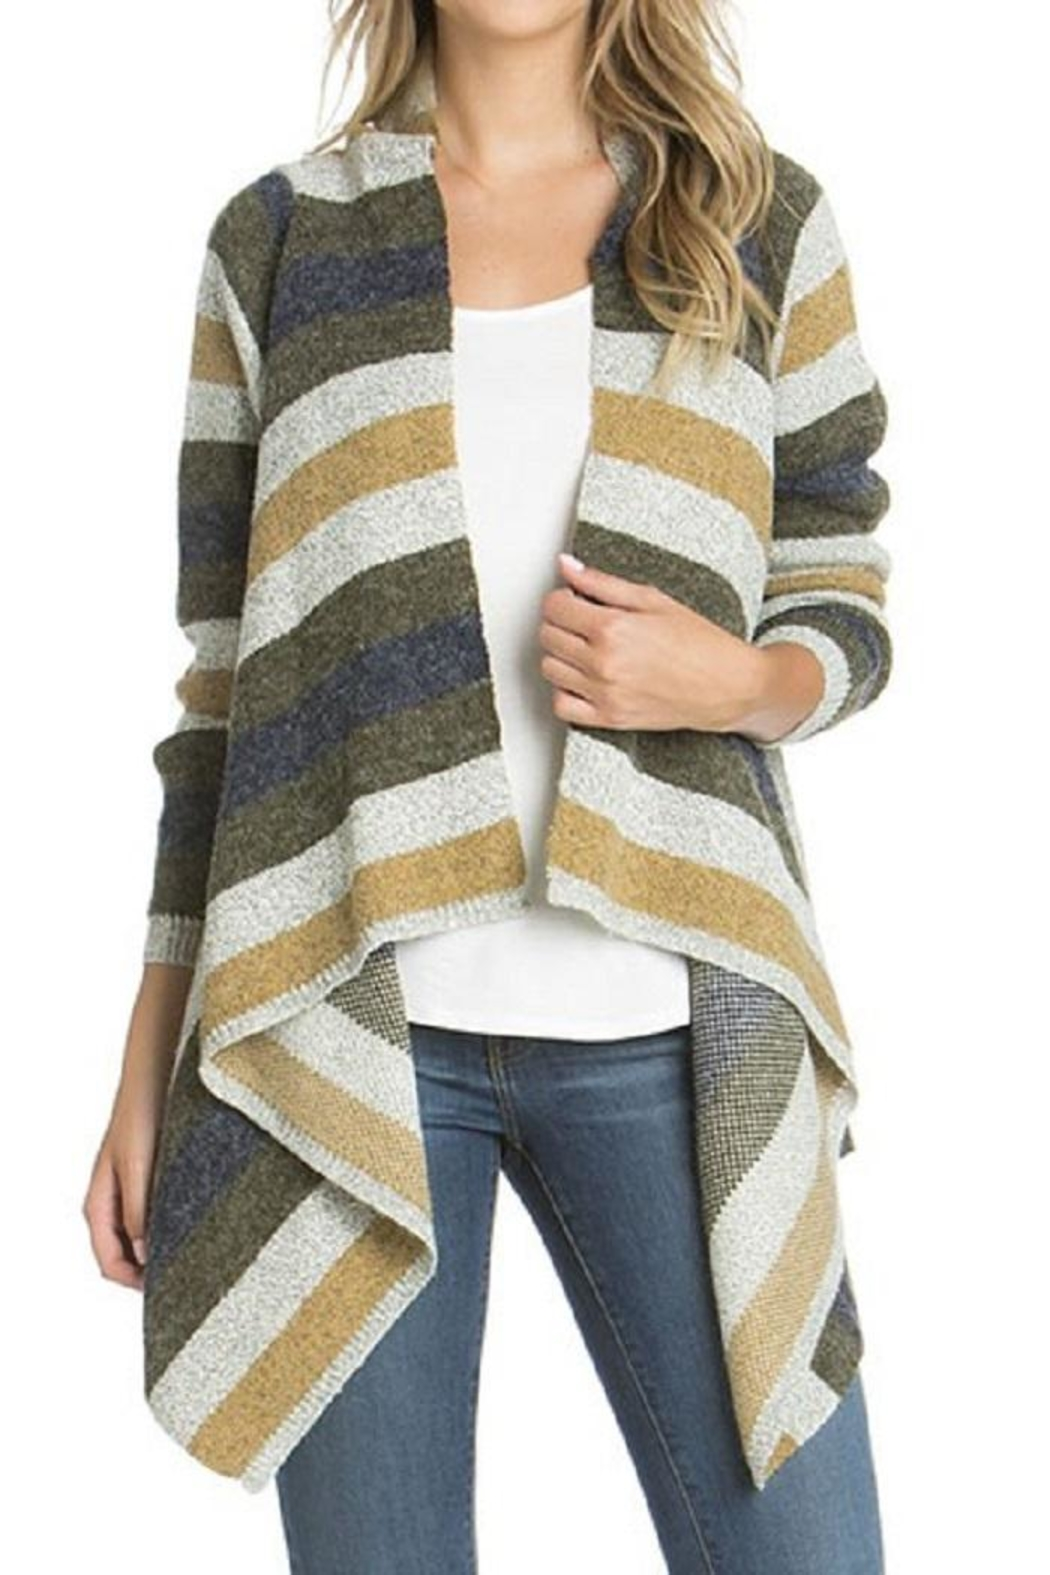 Le Shop Striped Waterfall Cardigan from New York City by Dor L'Dor ...